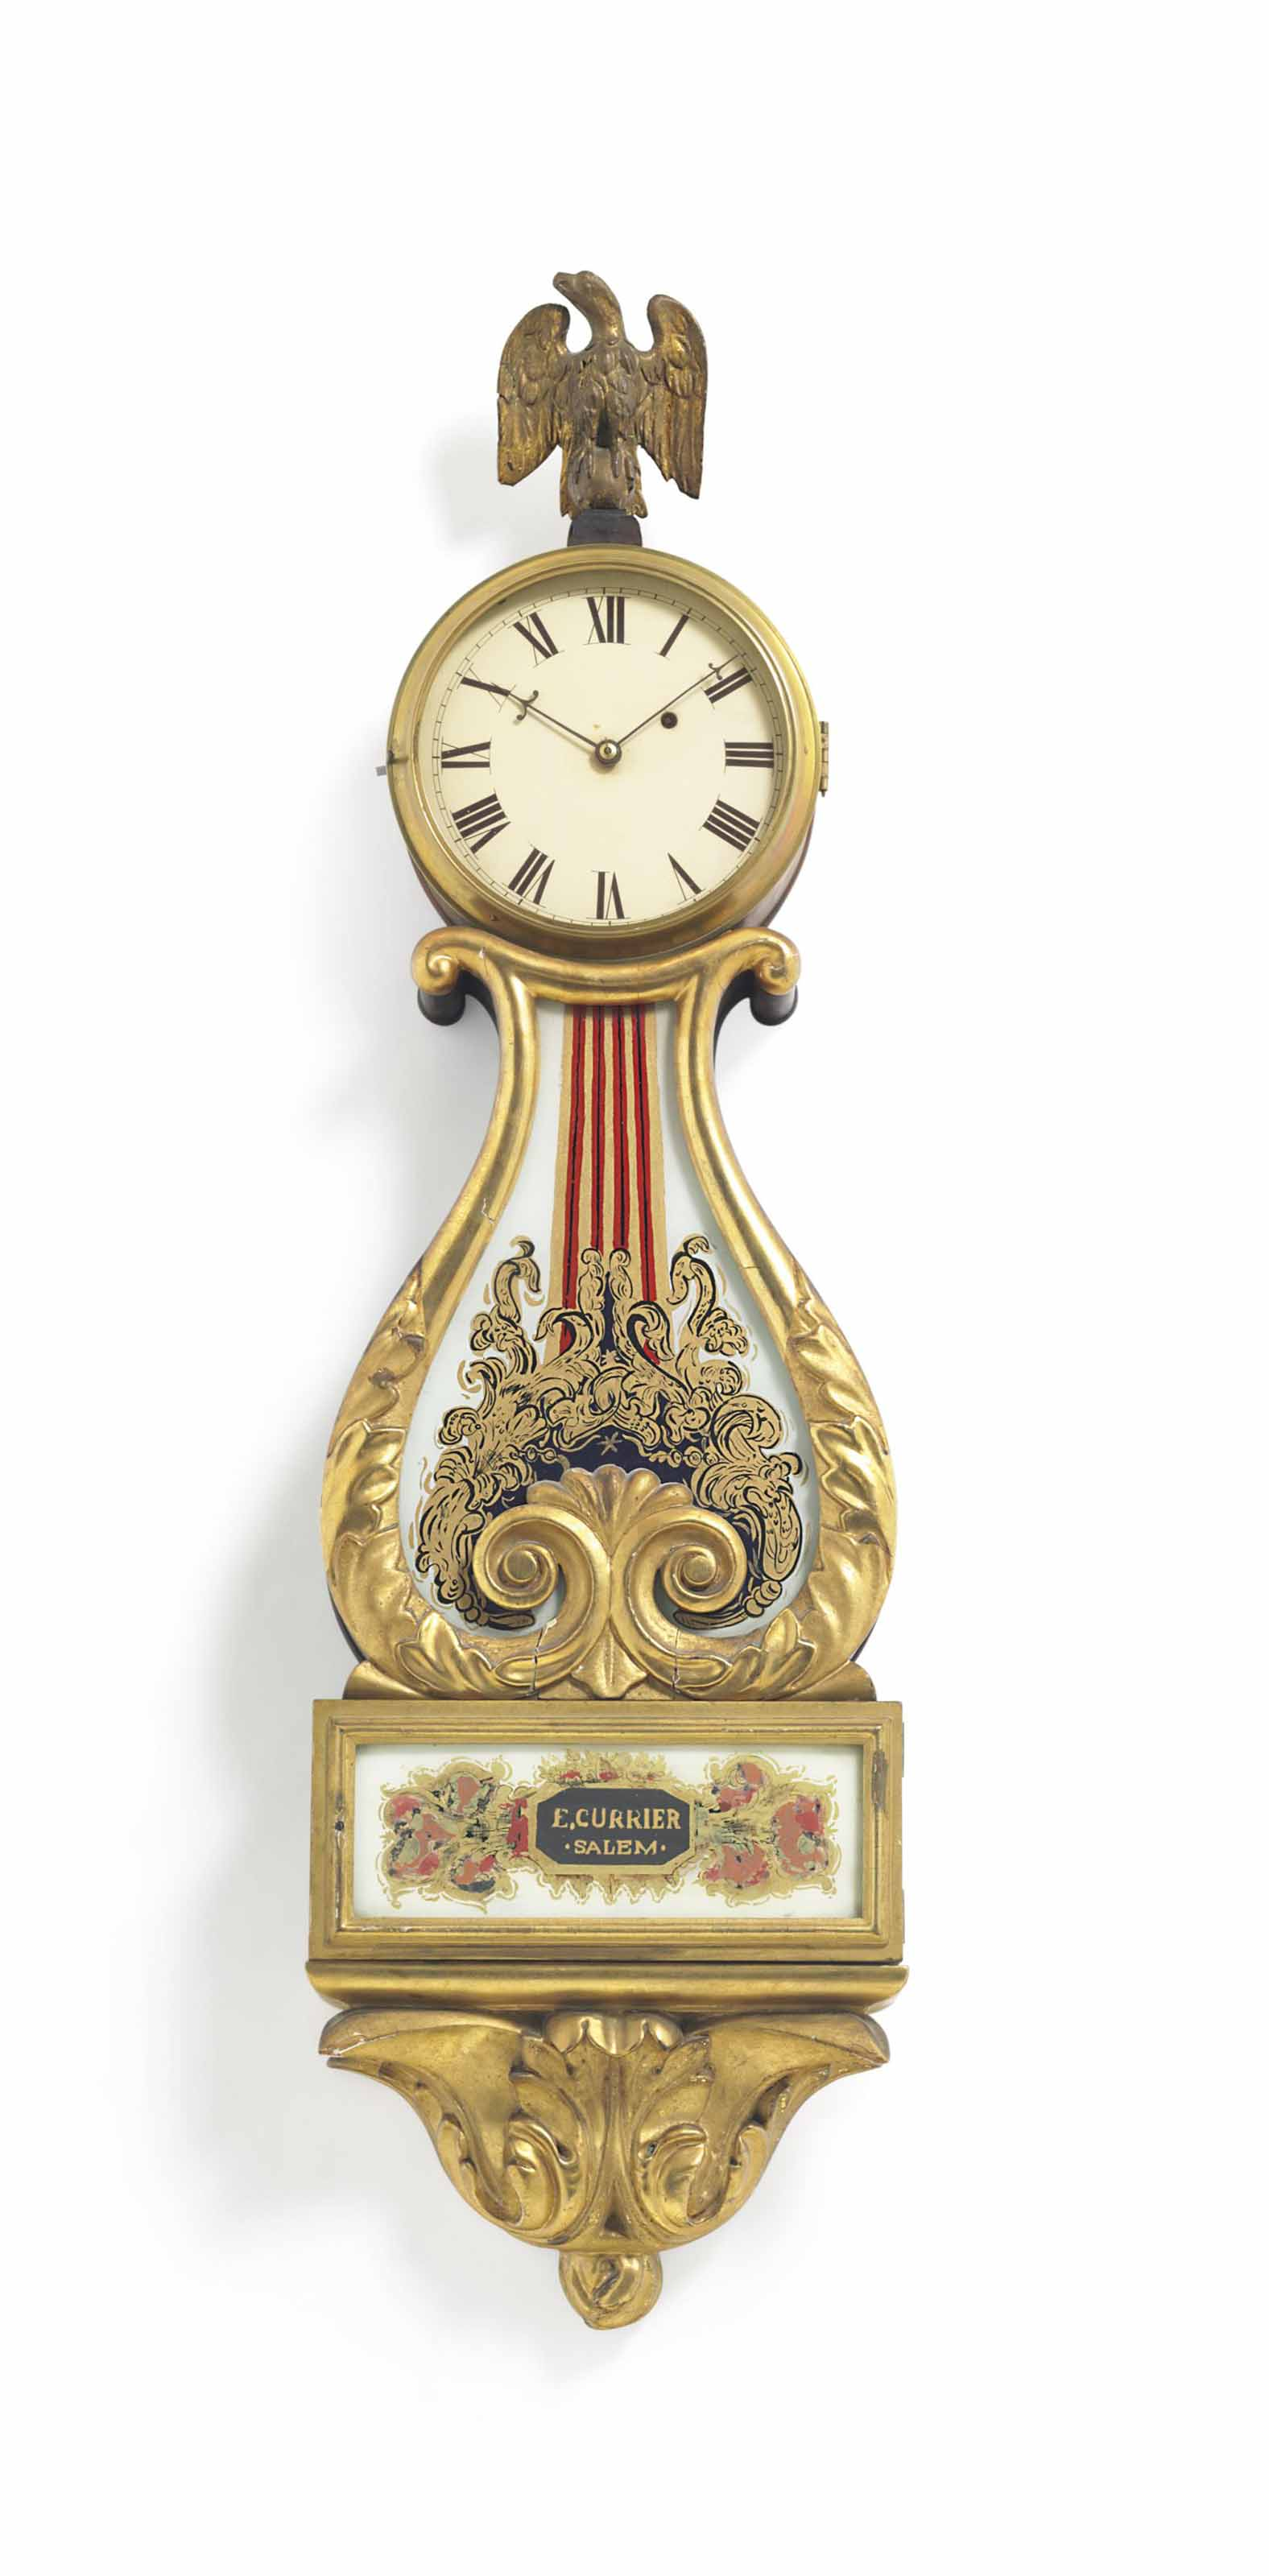 A CLASSICAL PARCEL-GILT MAHOGANY AND EGLOMISE LYRE TIMEPIECE CLOCK,